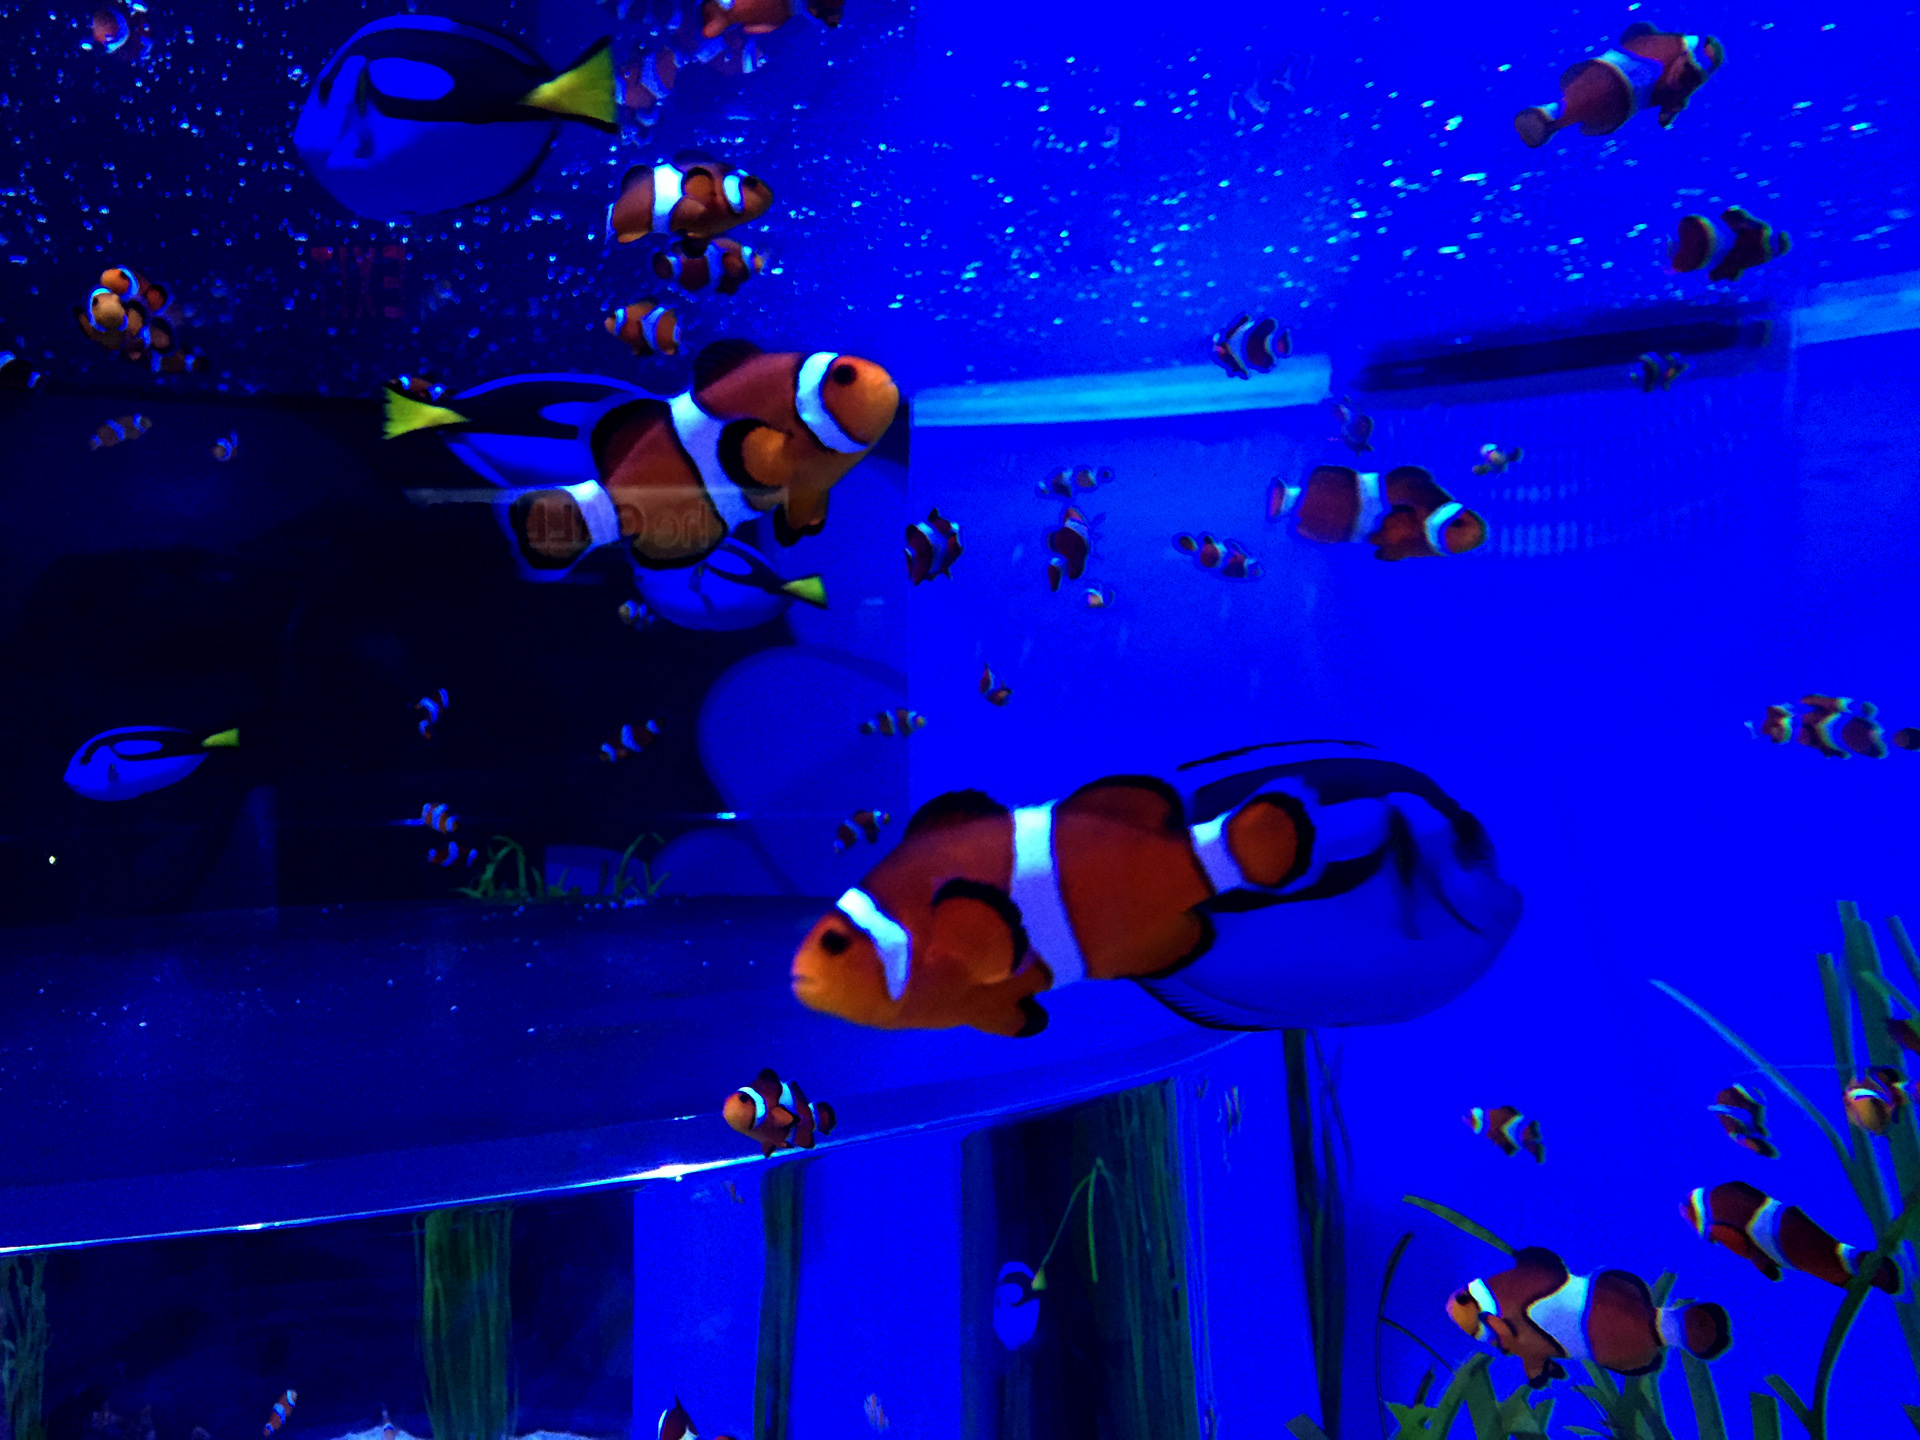 Clownfish and blue tangs look great together